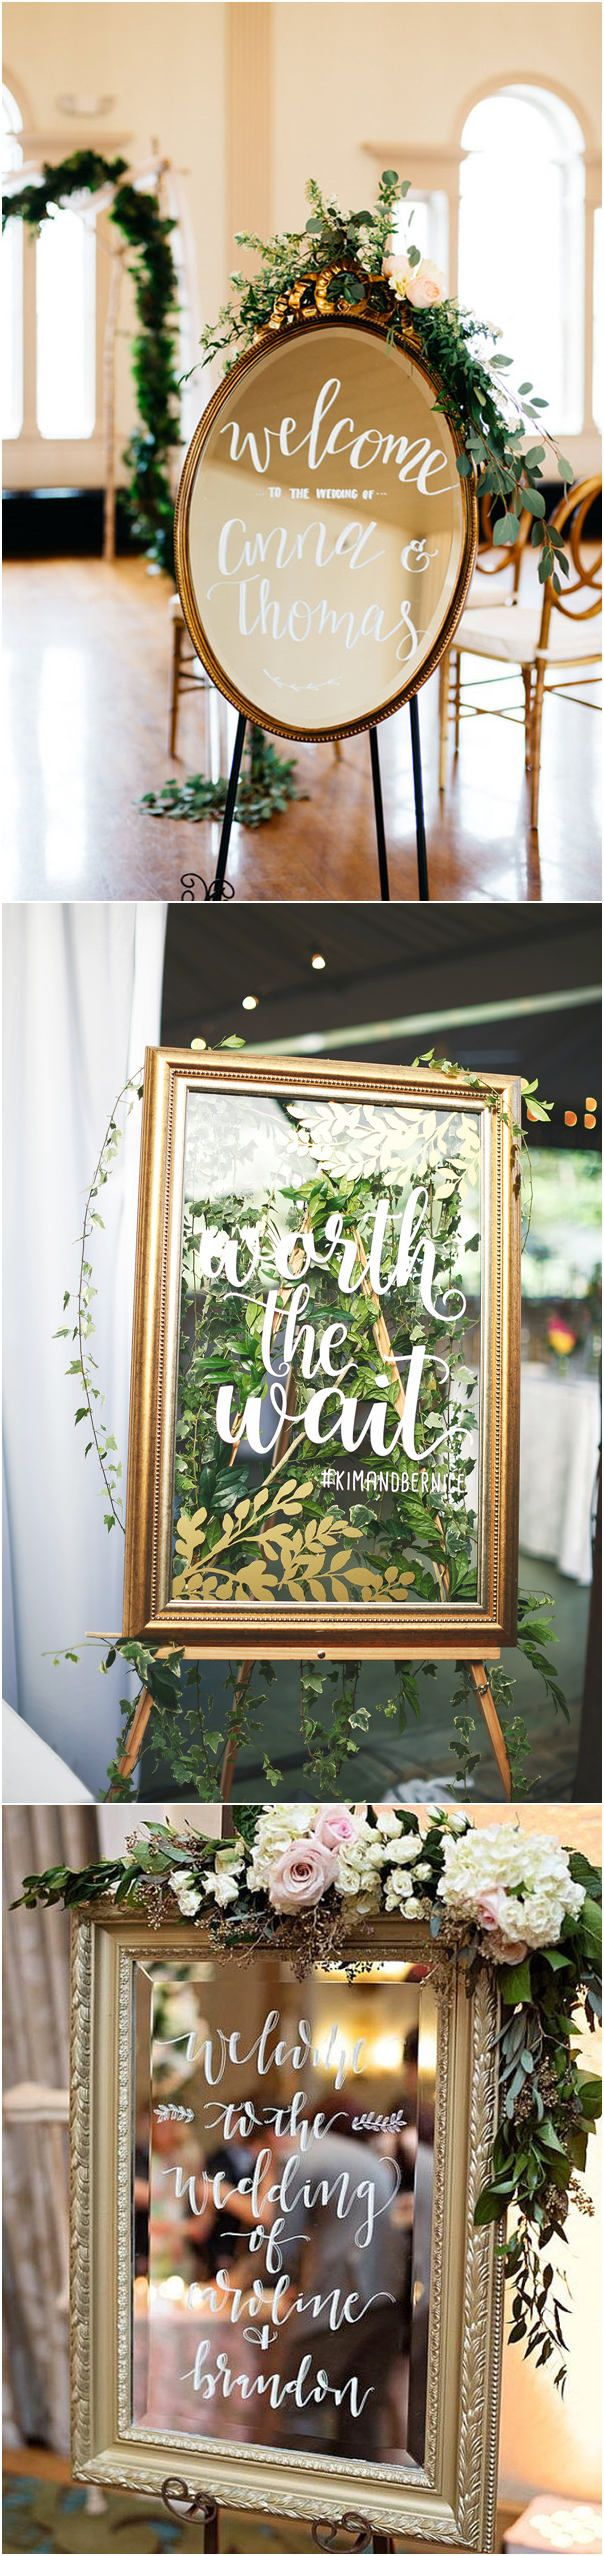 vintage wedding ideas with mirror wedding welcome sign ideas